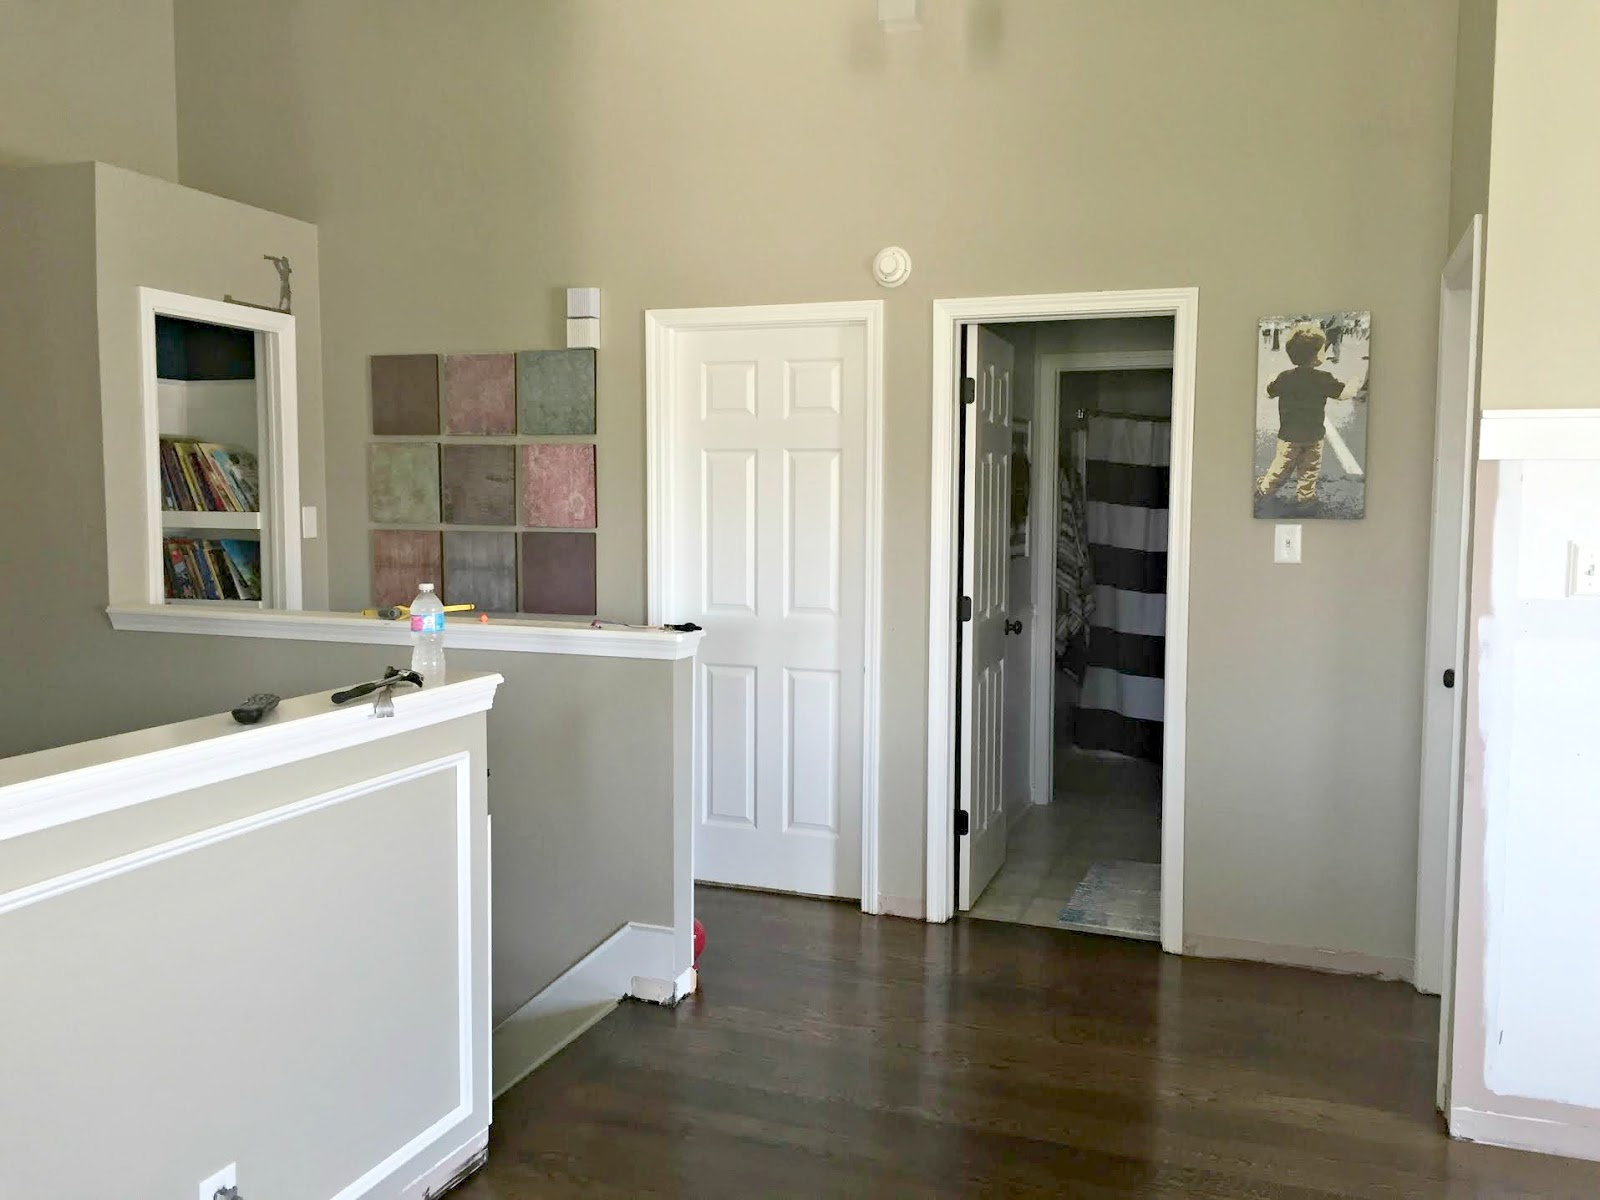 Finished Shiplap Walls And Farmhouse Door Trim In The Loft From Thrifty Decor Chick